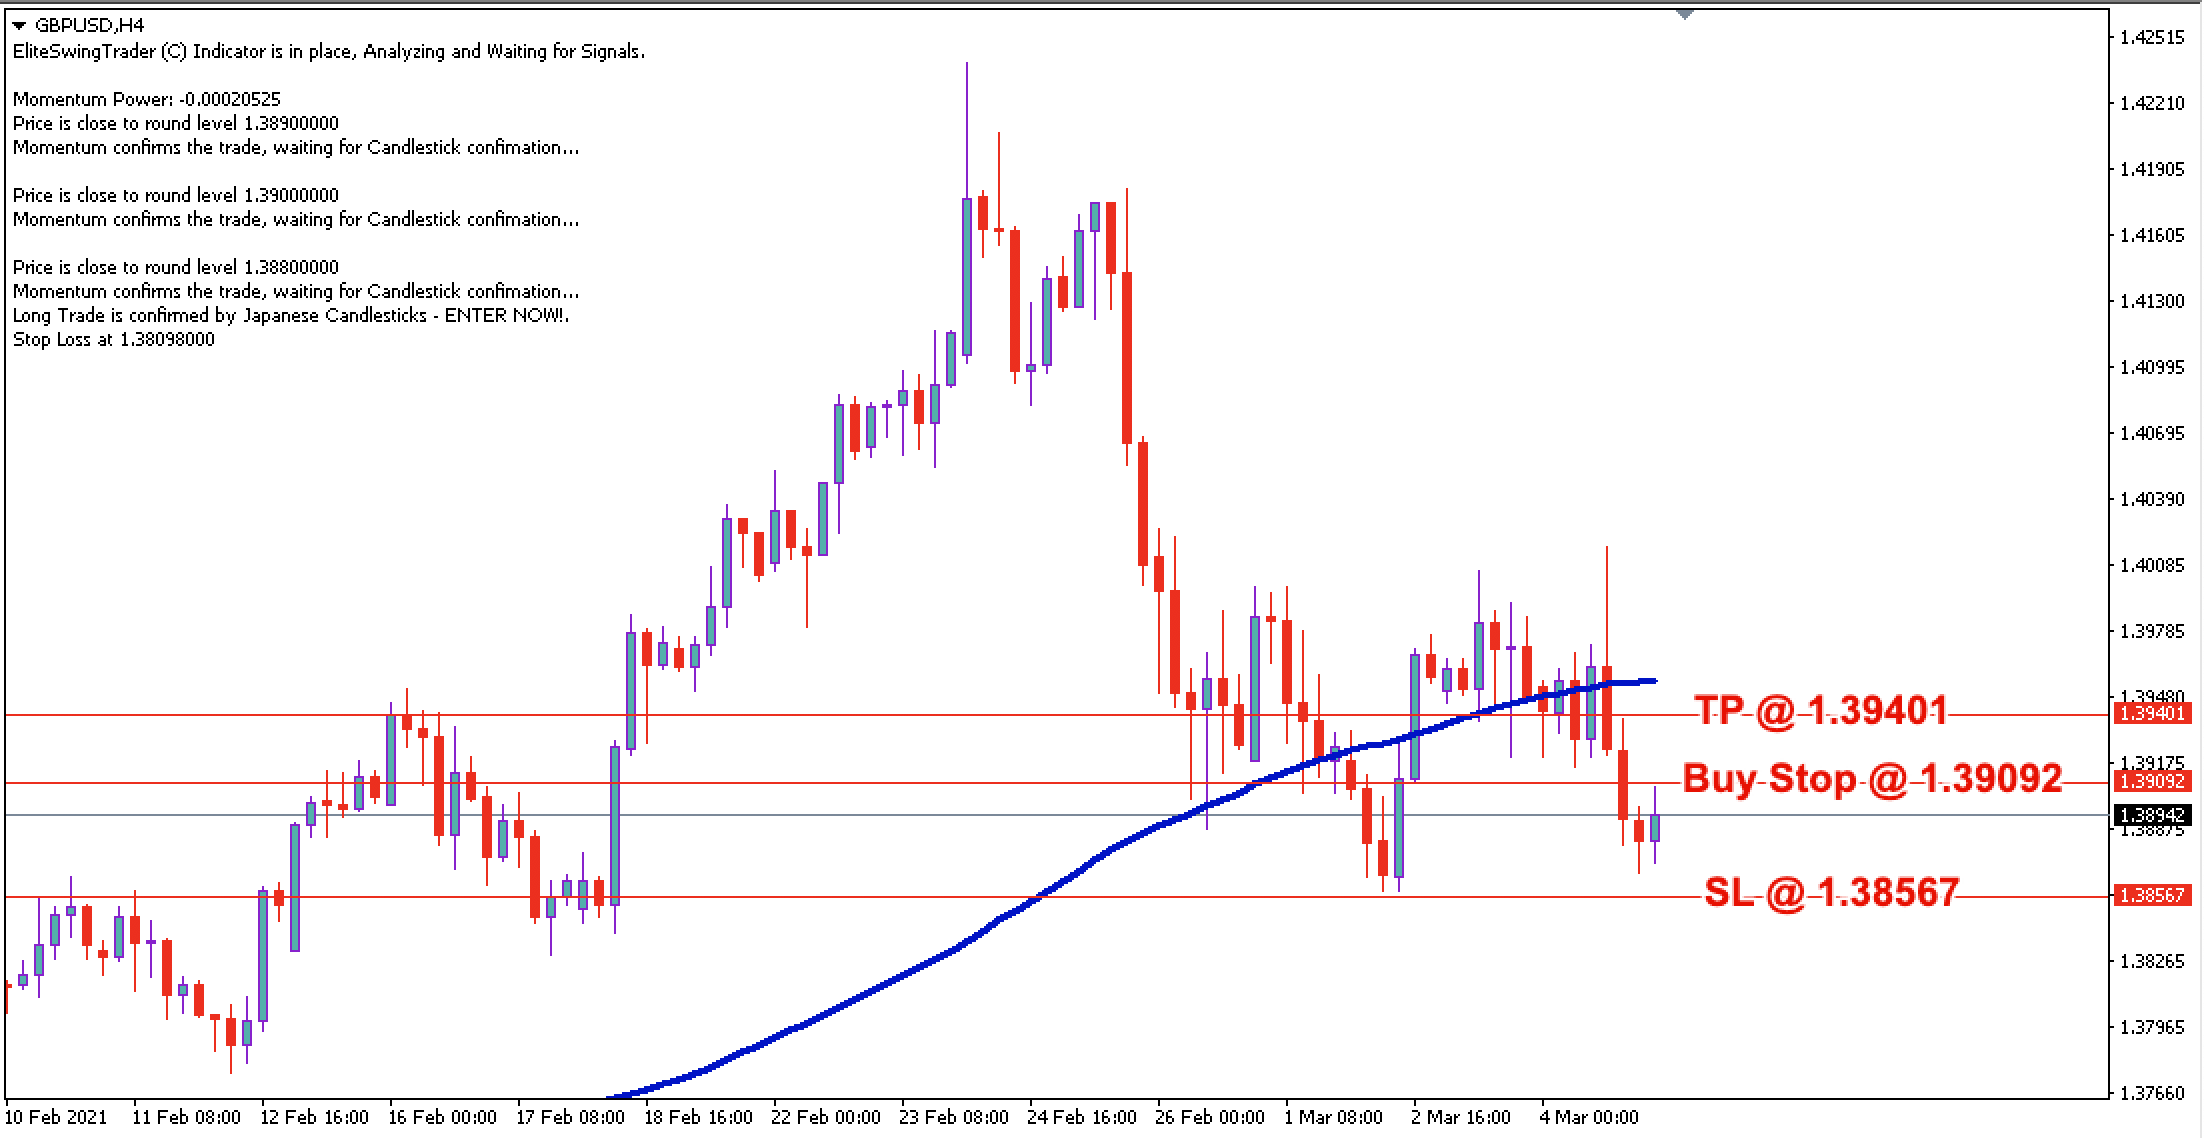 GBP/USD Daily Price Forecast - 5th March 2021